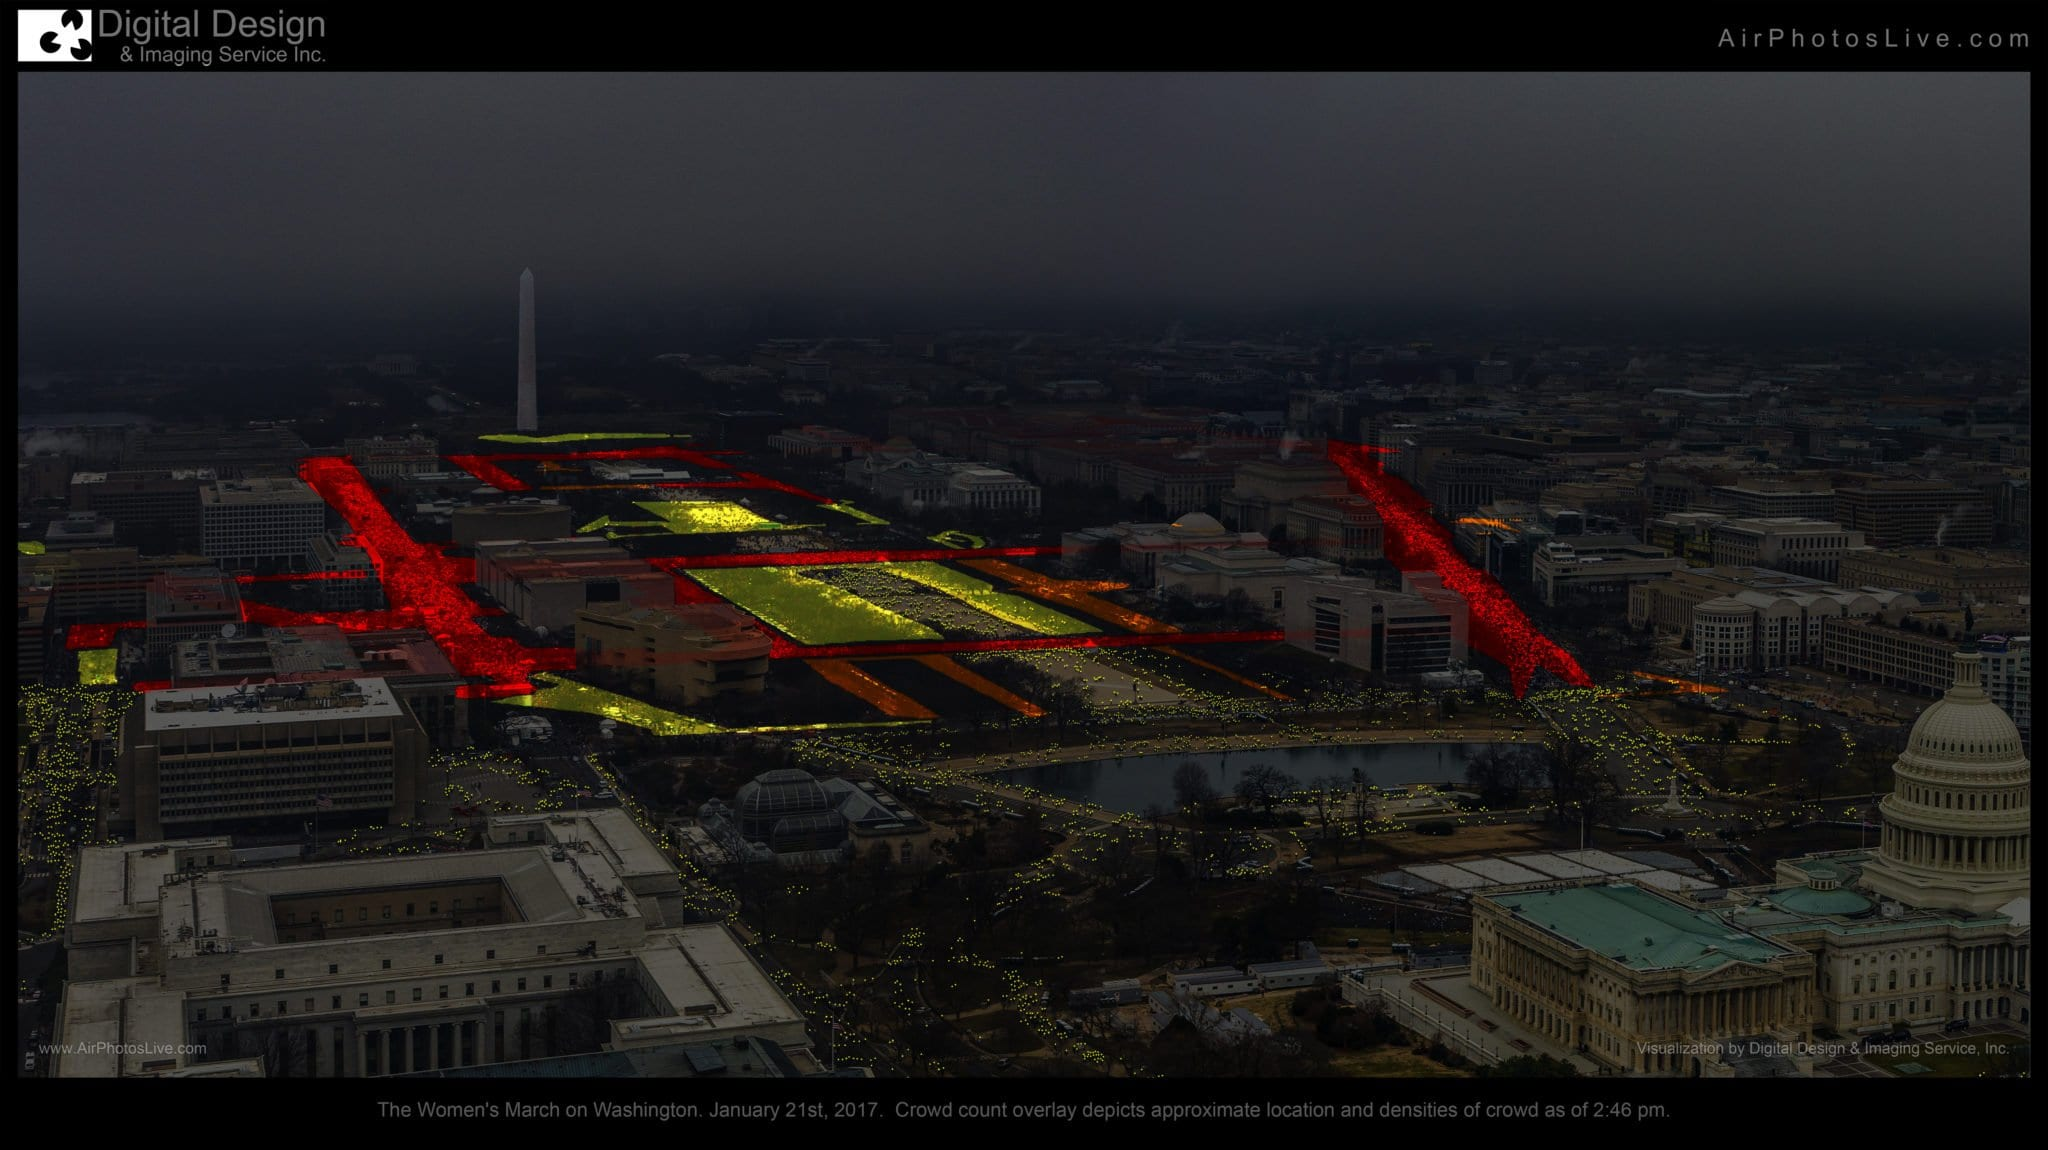 The Women's March on Washington. January 21, 2017. Crowd count overlay depicts approximate location and densities and crowd as of 2:46 p.m. (Digital Design & Imaging Service, Inc.)